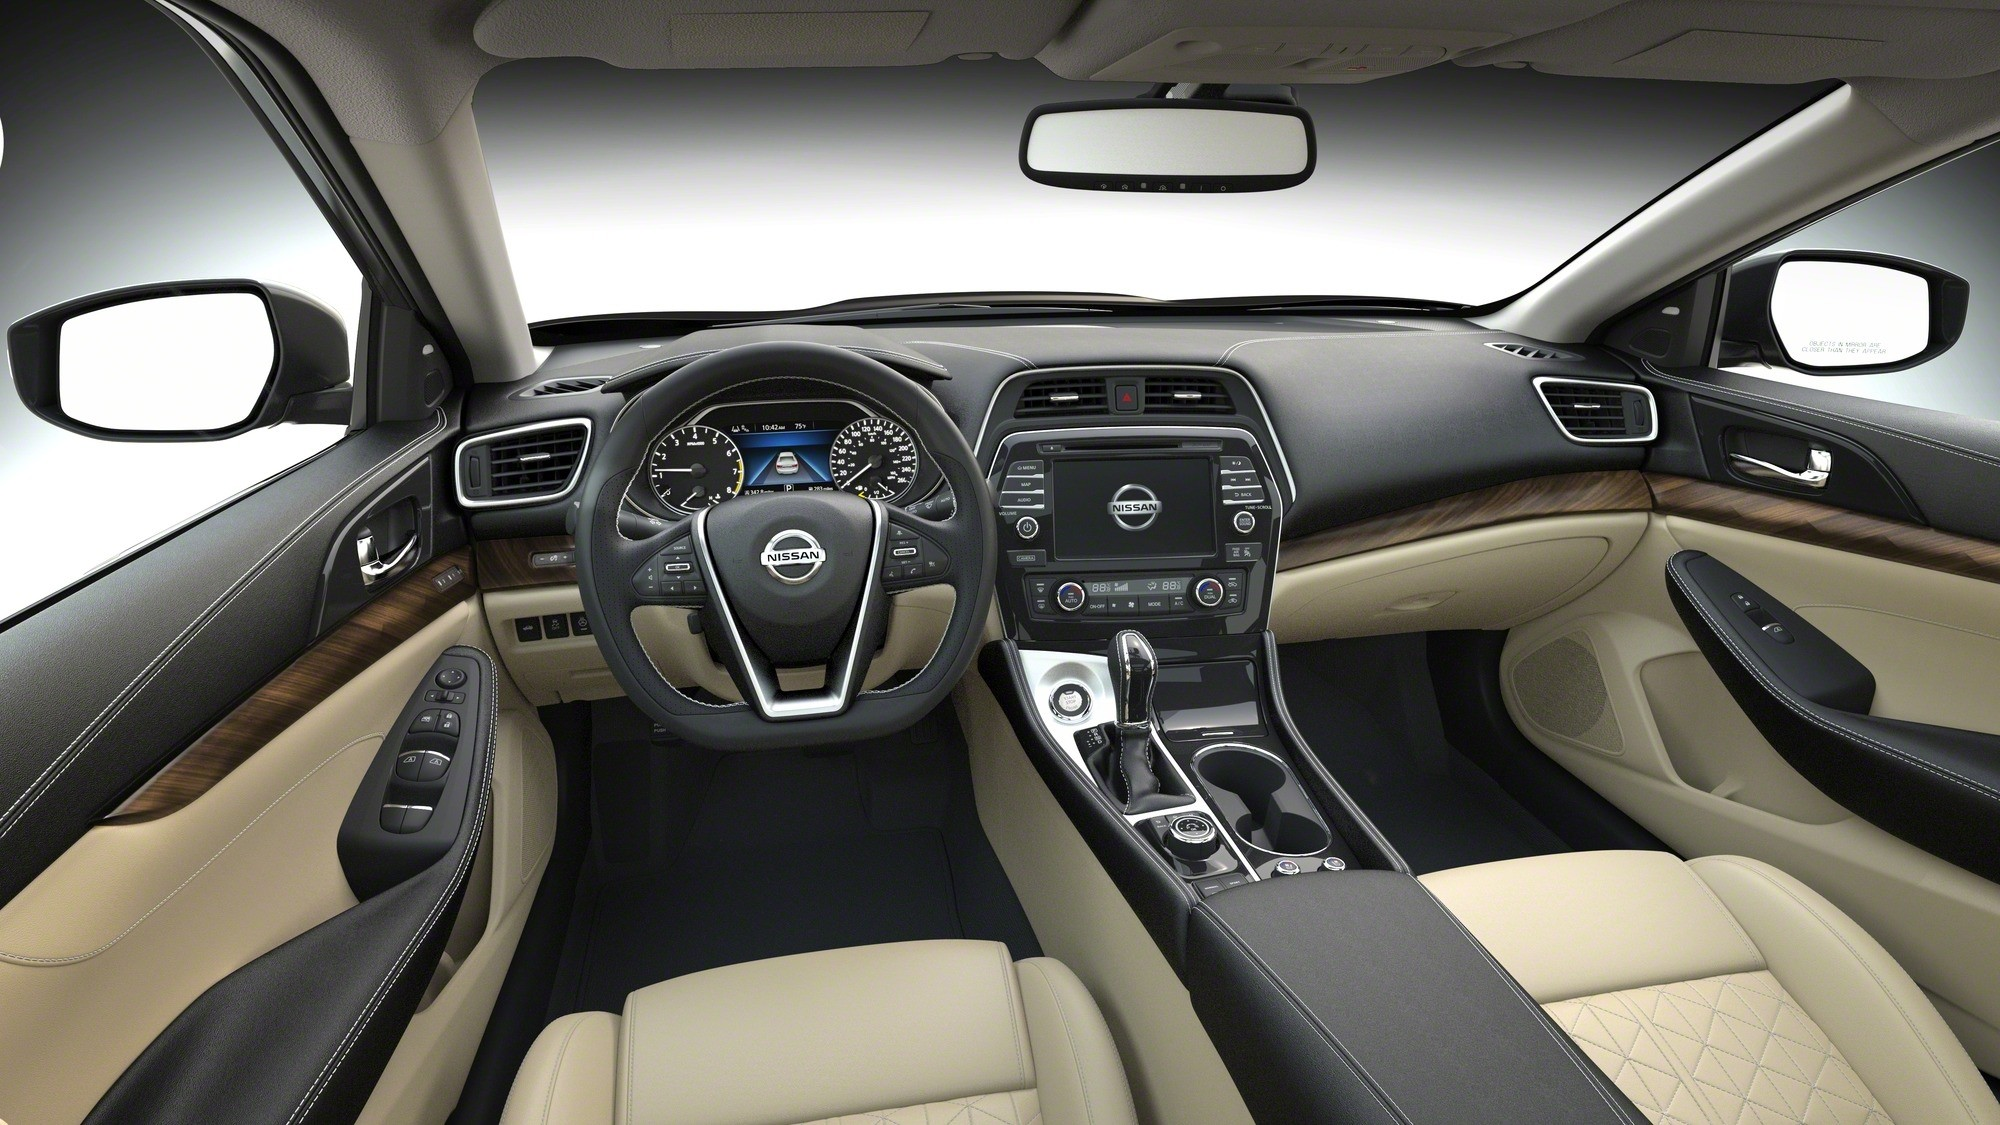 2016 Nissan Sentra Sv >> 2016 Nissan Maxima Revealed in New York, Prices Start at $32,410 MSRP - autoevolution